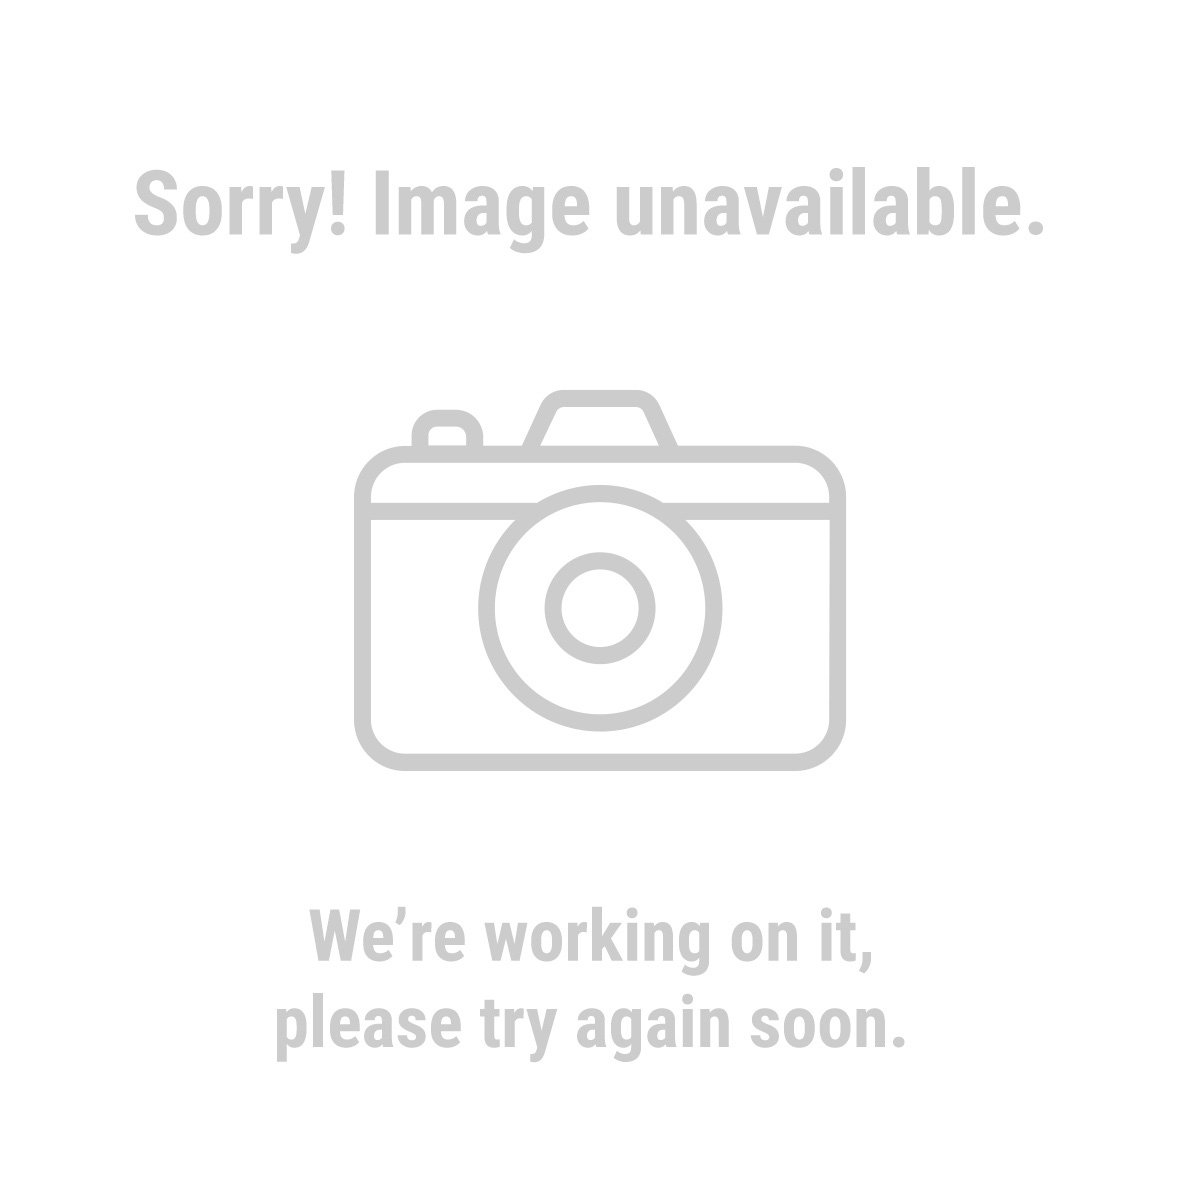 Car battery charging 6 amp or 2 amp charger